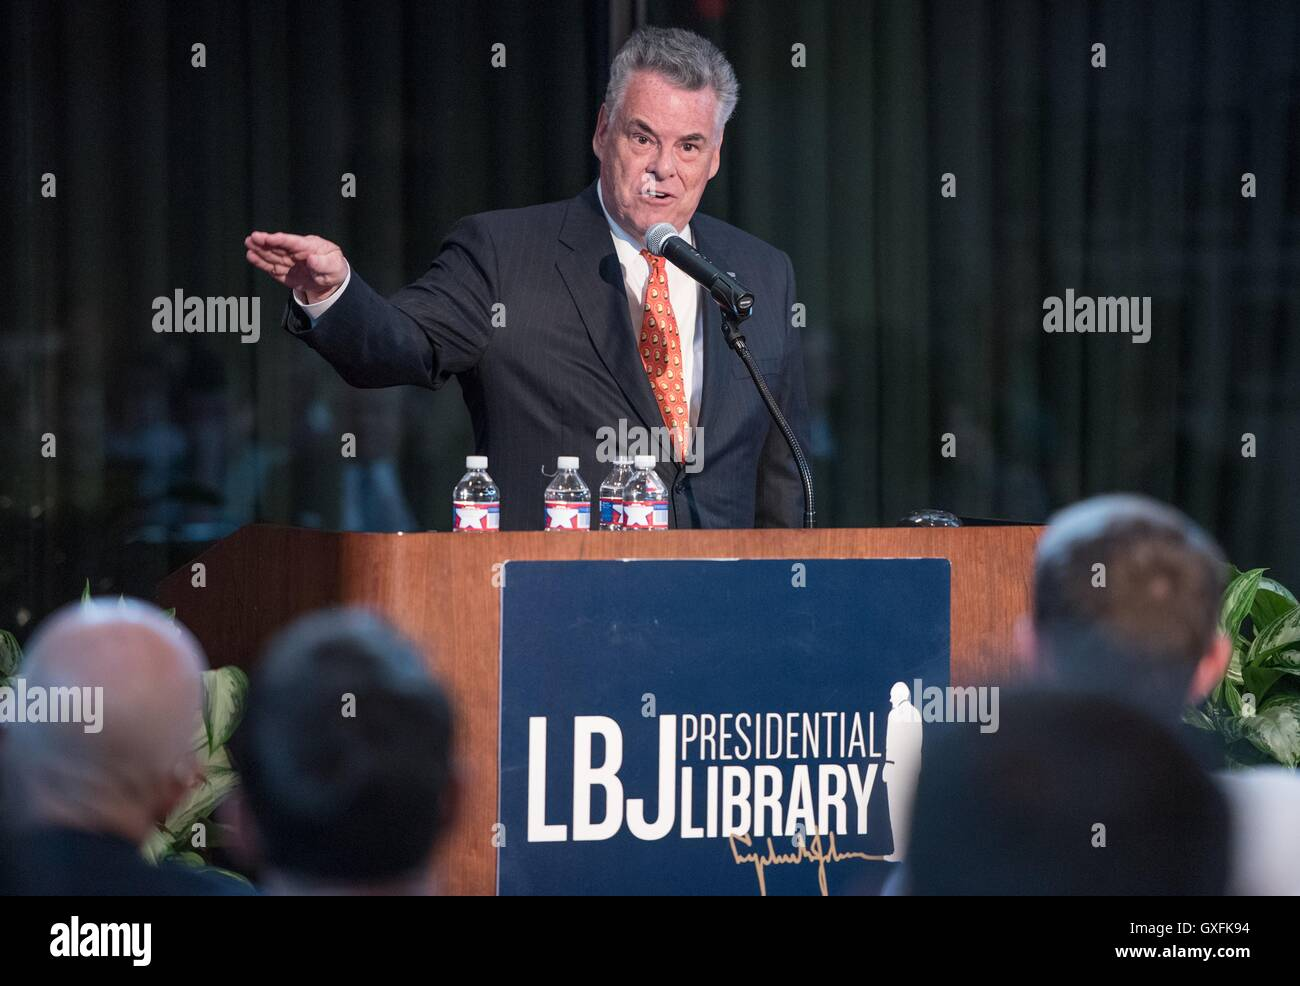 U.S. Republican Party Representative from New York Peter King speaks during a UT conversation at the LBJ Presidential - Stock Image